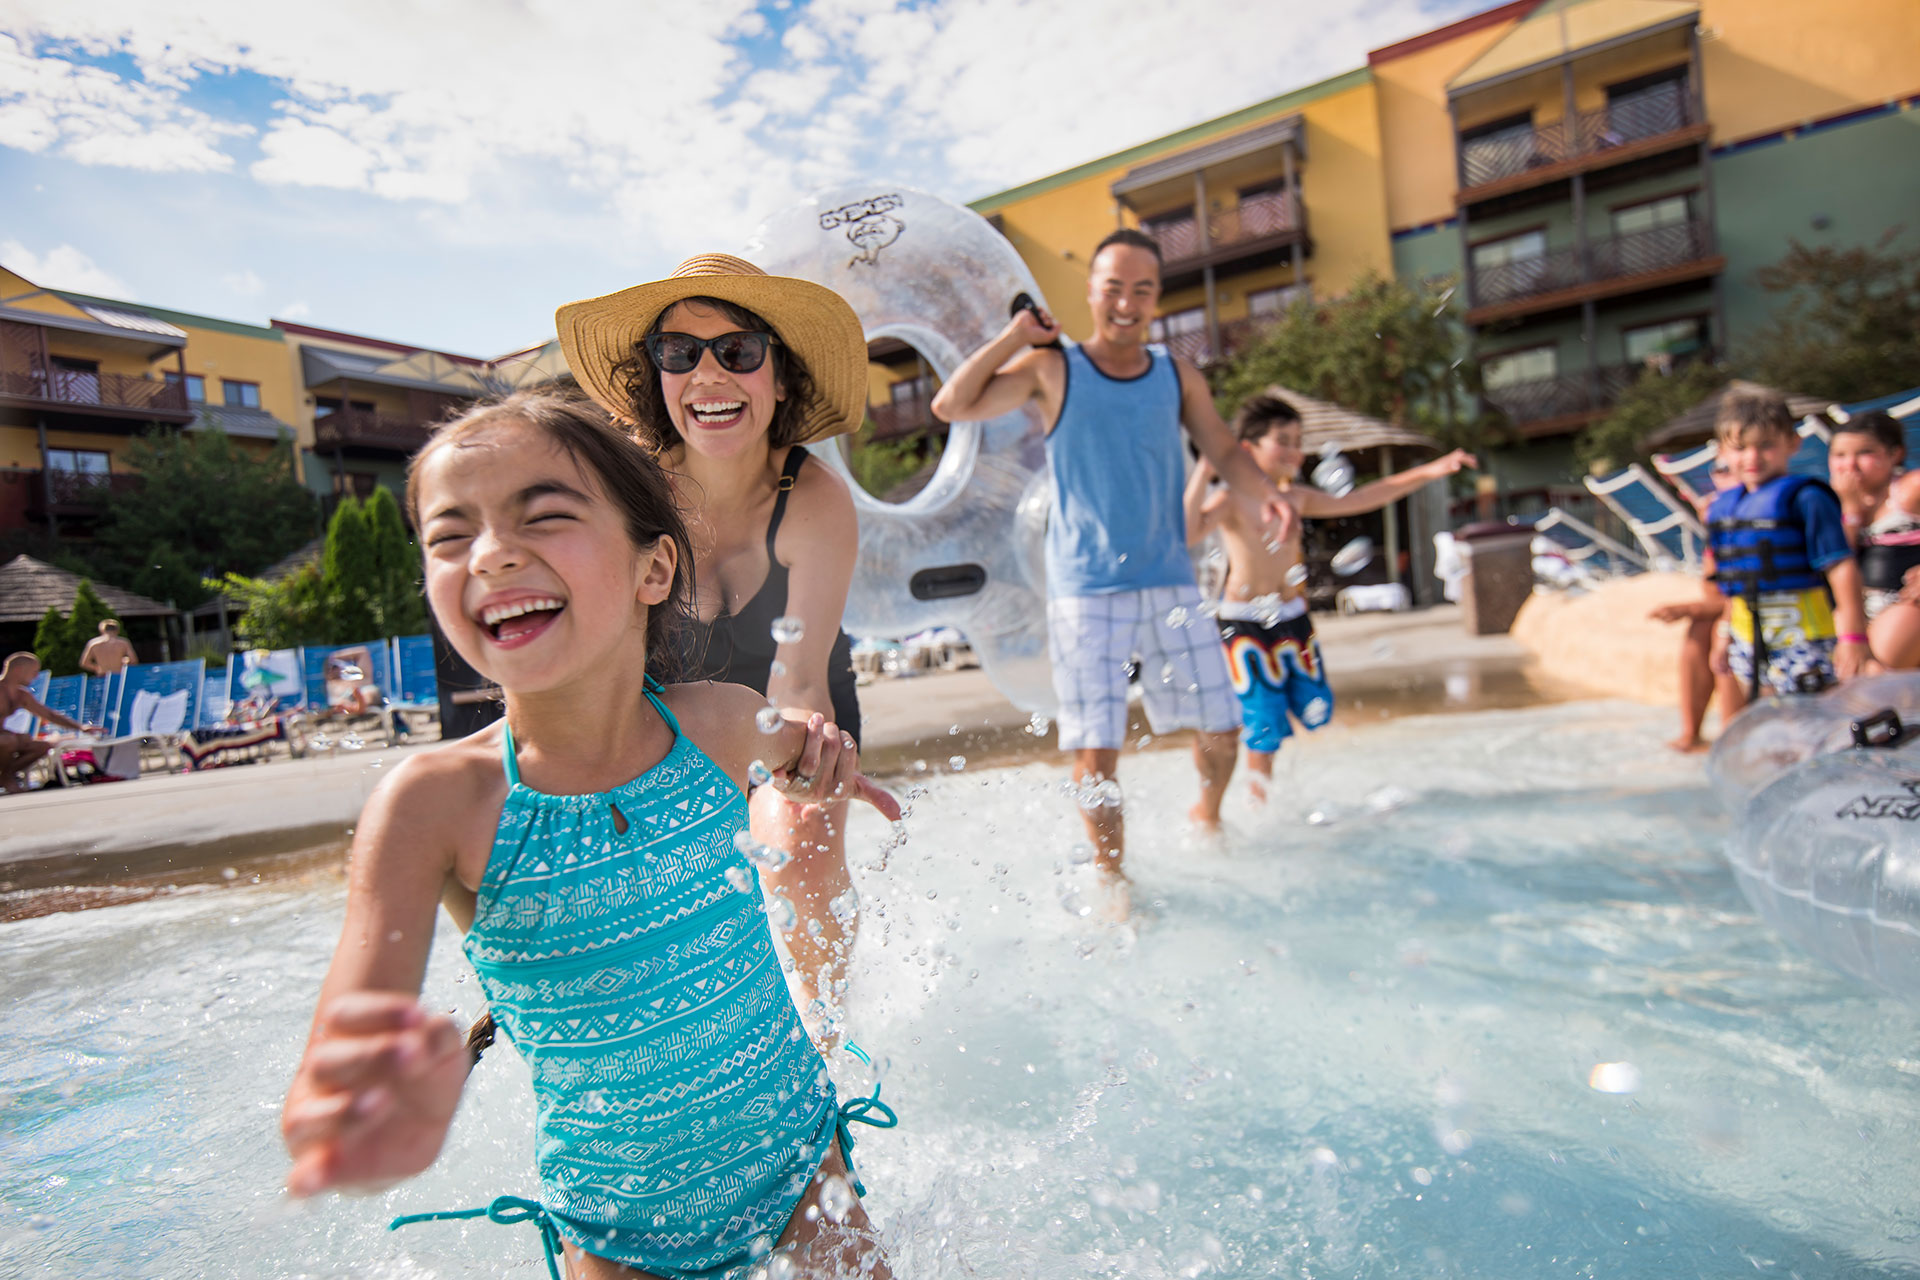 Outdoor Water Park at Kalahari Resort in Wisconsin Dells; Courtesy of Wisconsin Dells Visitor & Convention Bureau